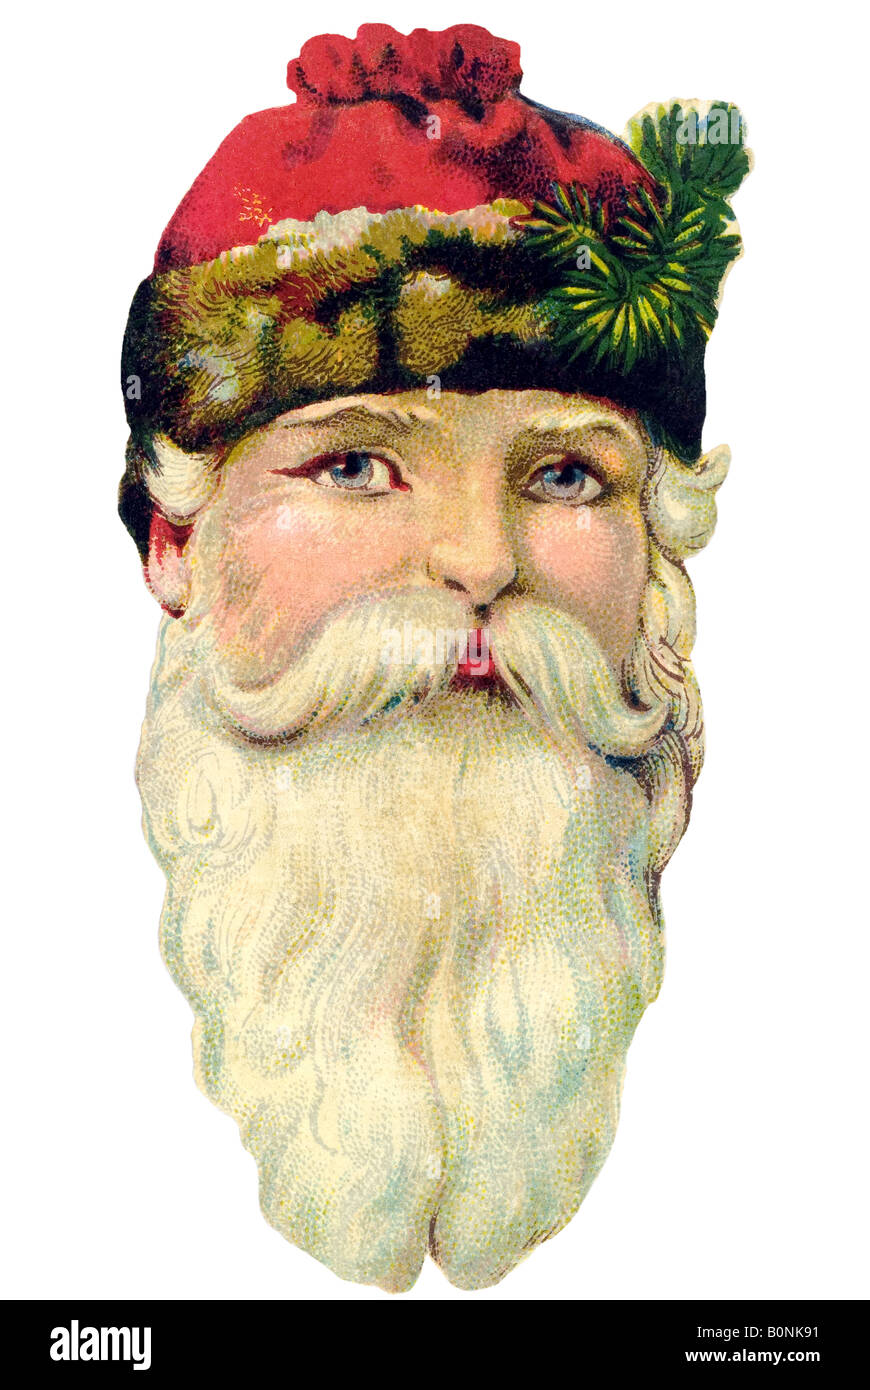 old fashioned Father Christmas red cap and big white beard 19th century Germany - Stock Image